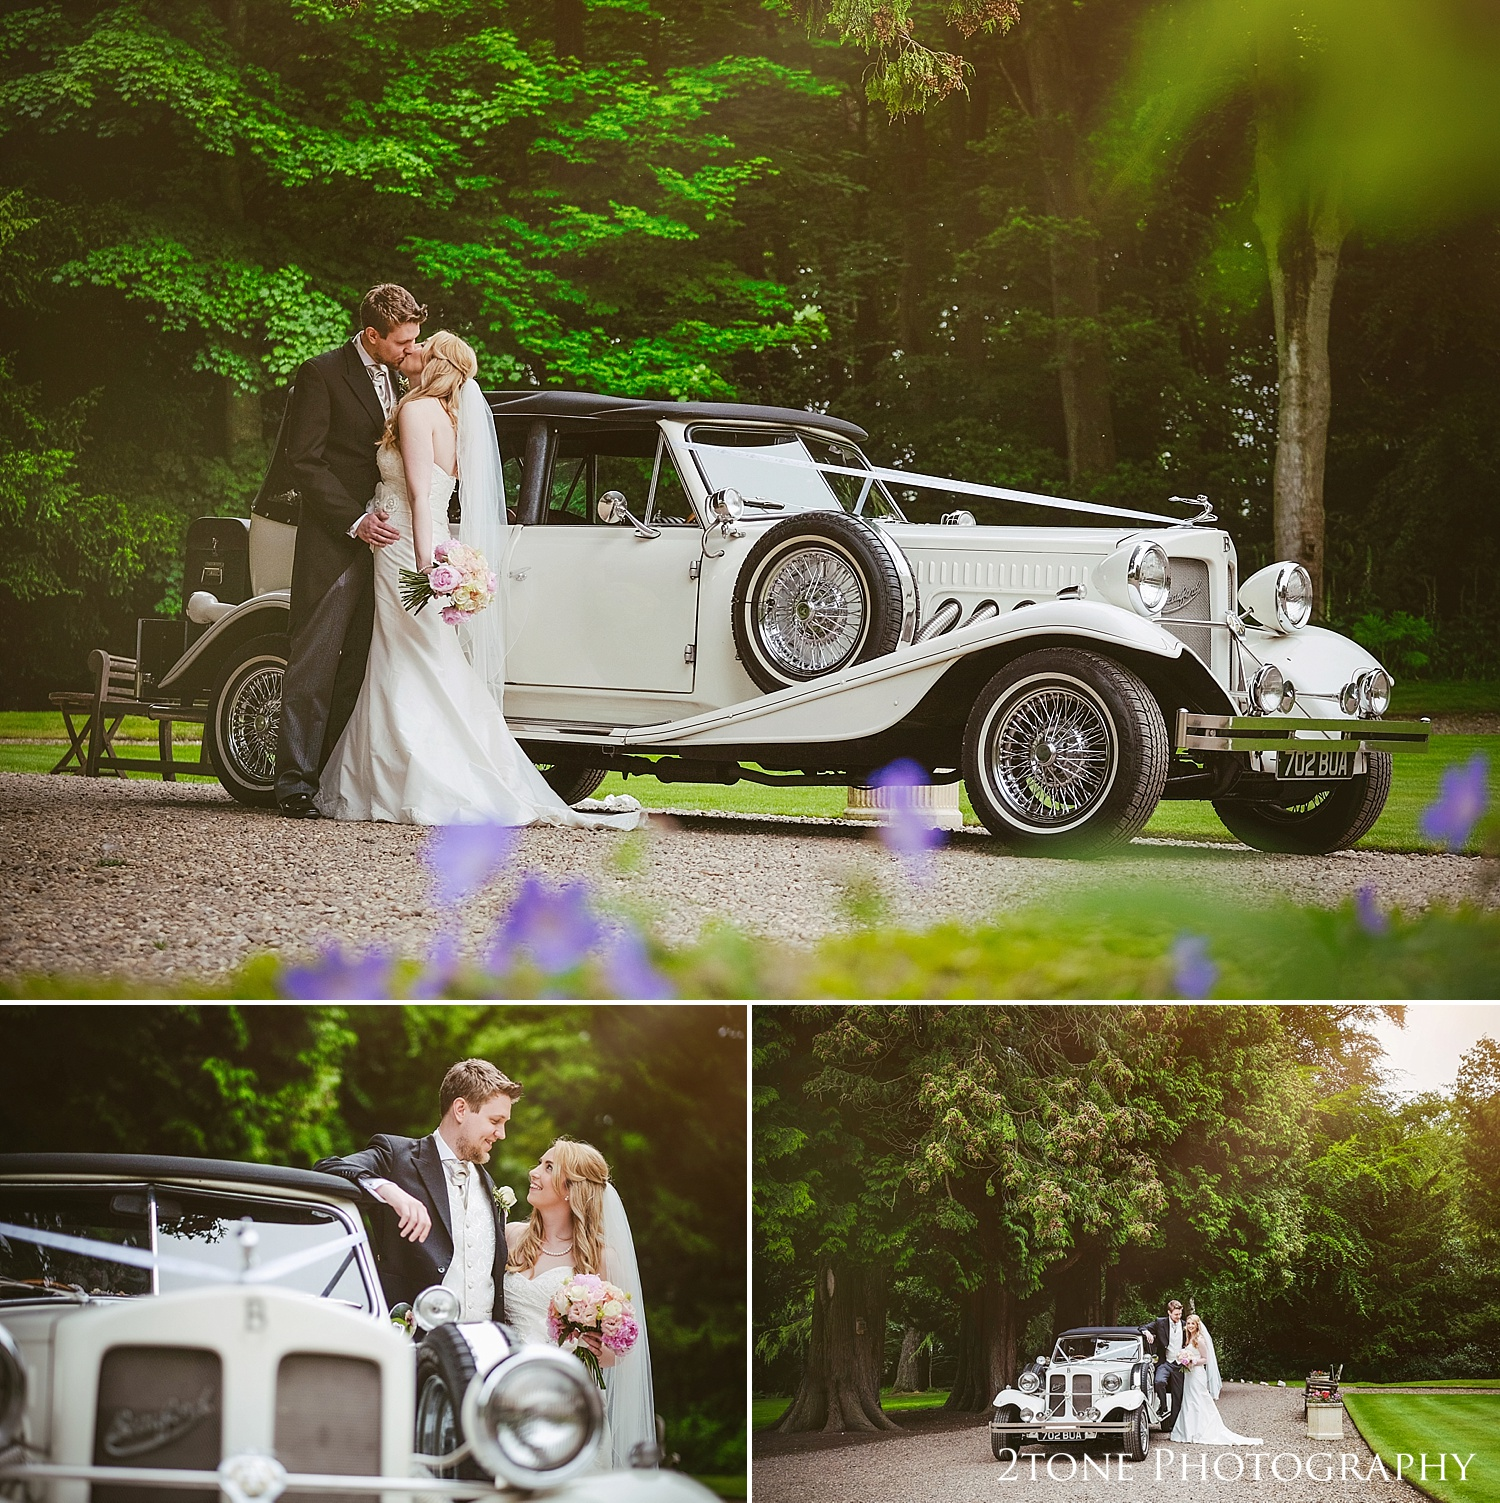 Wedding photography at Eshott Hall by www.2tonephotograhy.co.uk